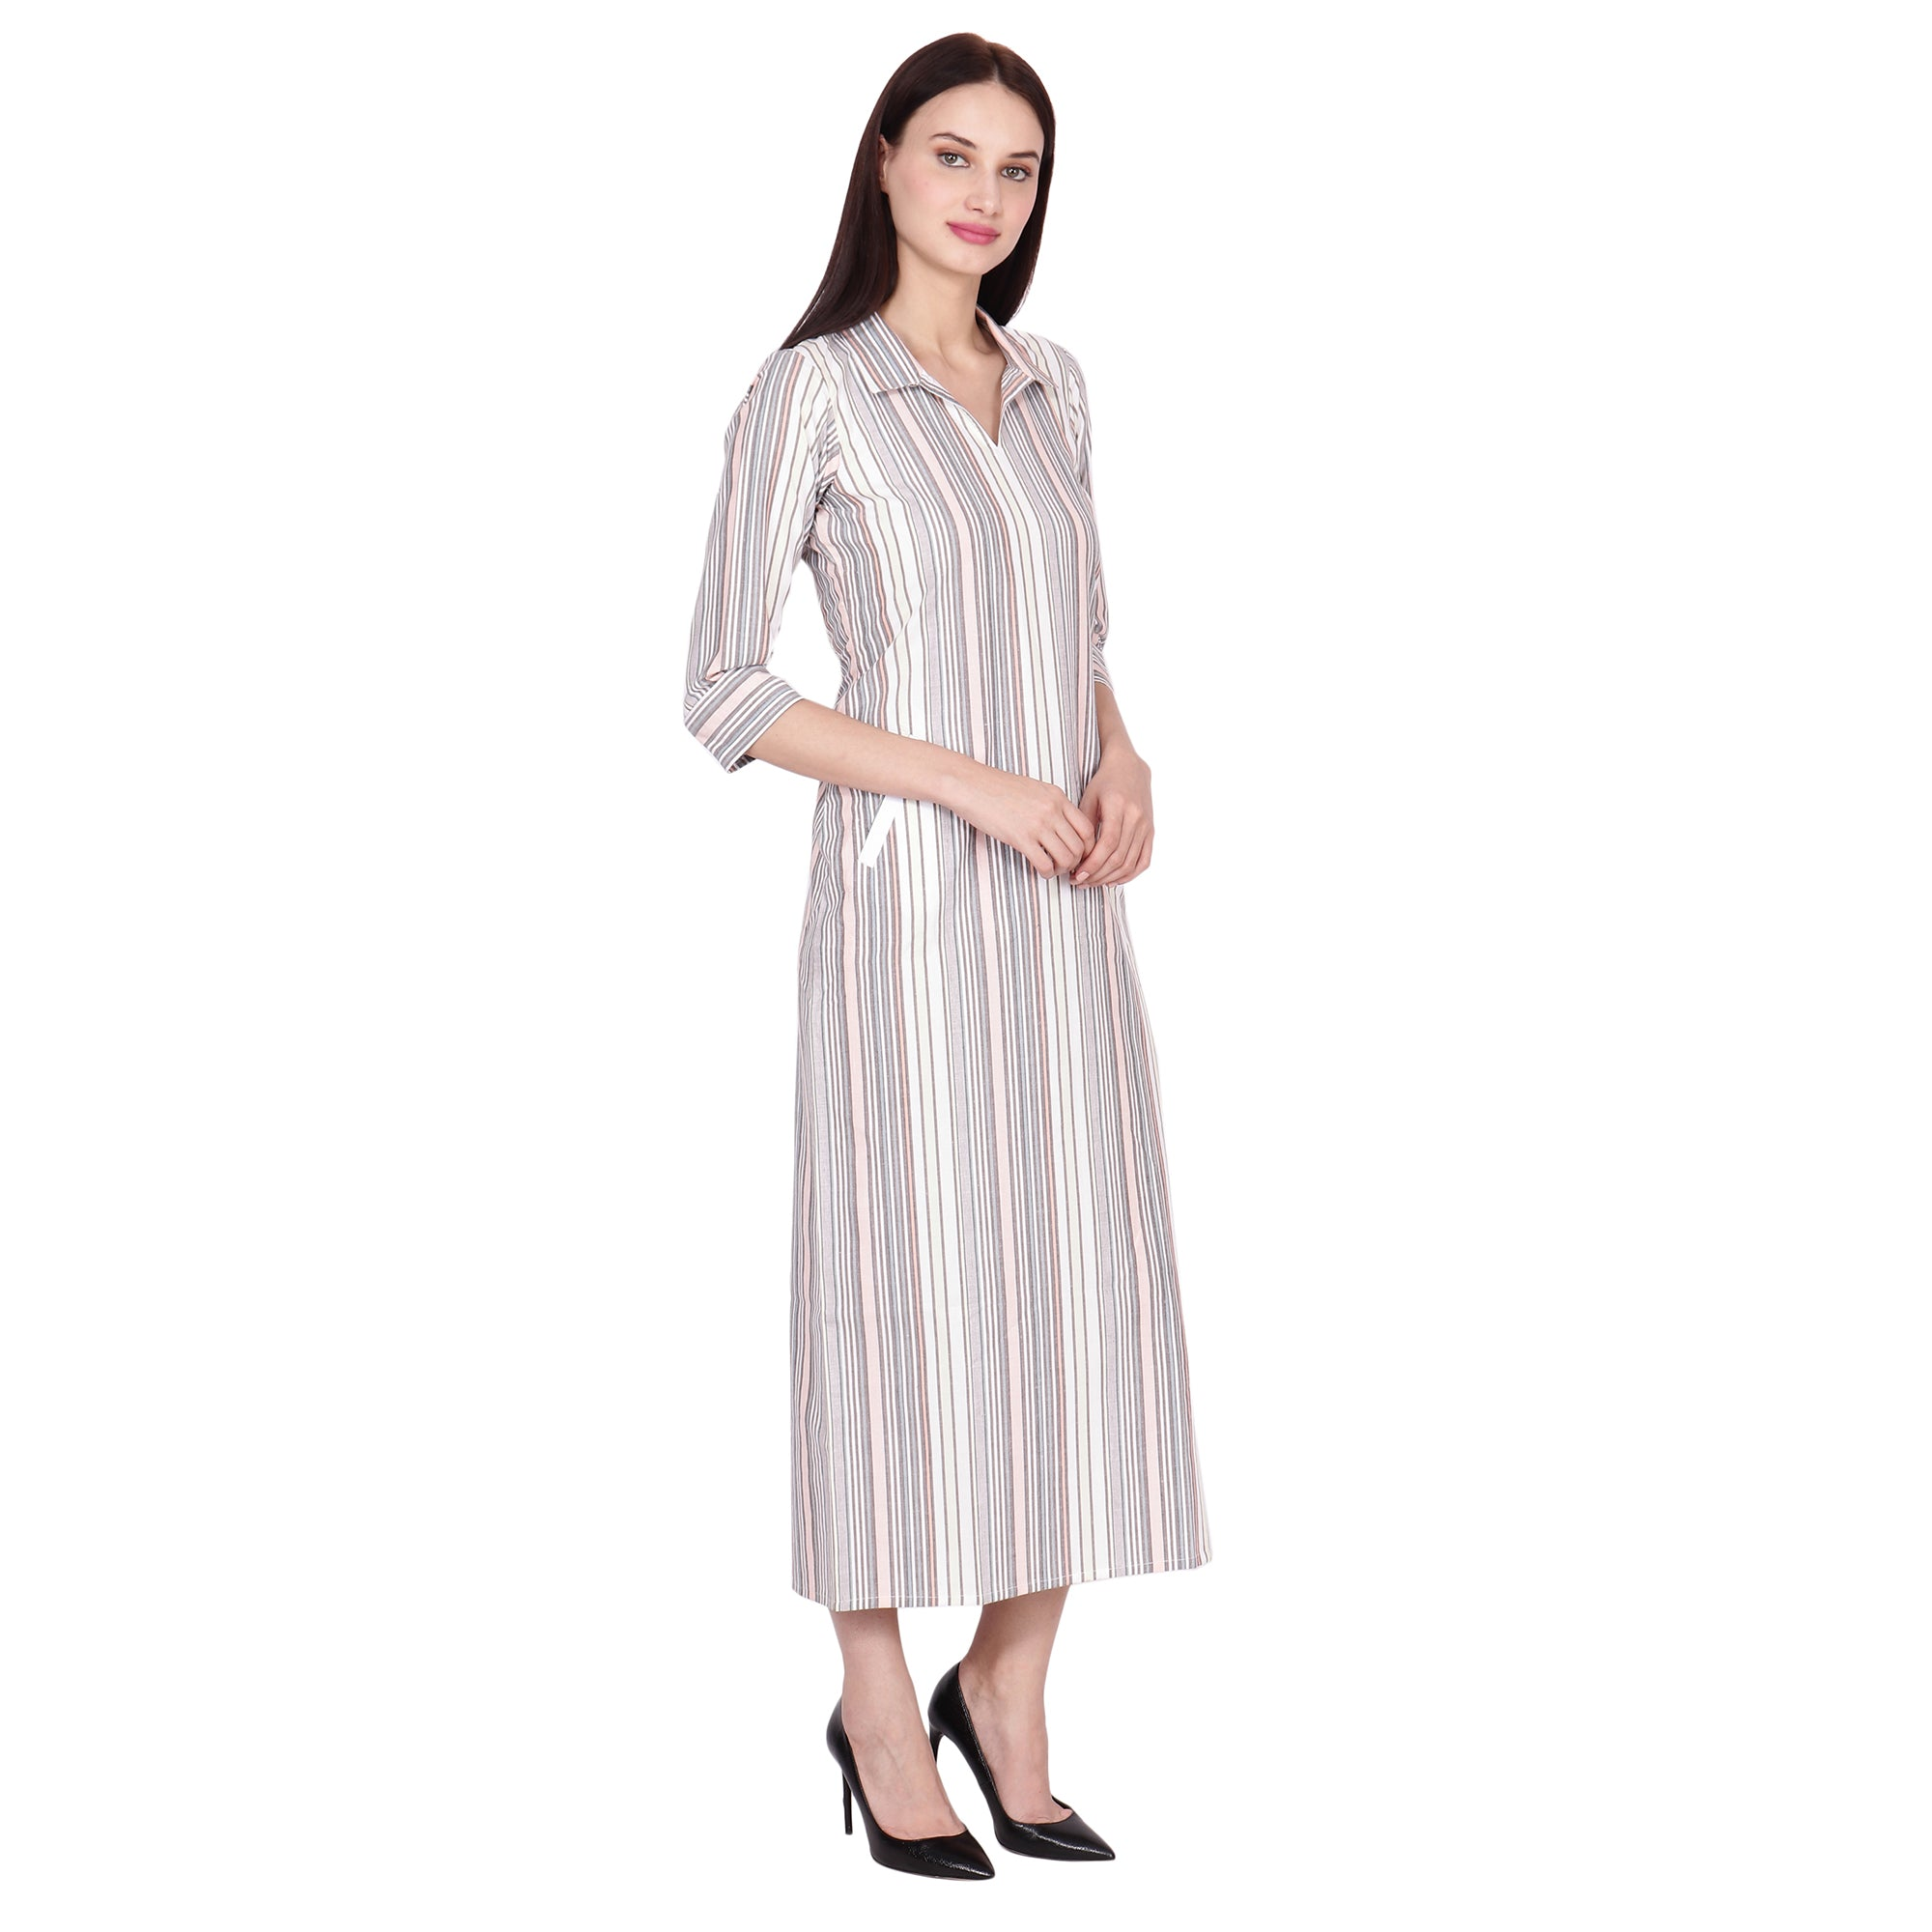 all size, apella, best online store, cotton, dresses online, plus size, quality products, rayon, reasonable price, skin friendly fabrics, soft cotton, soft rayon, super plus size best online